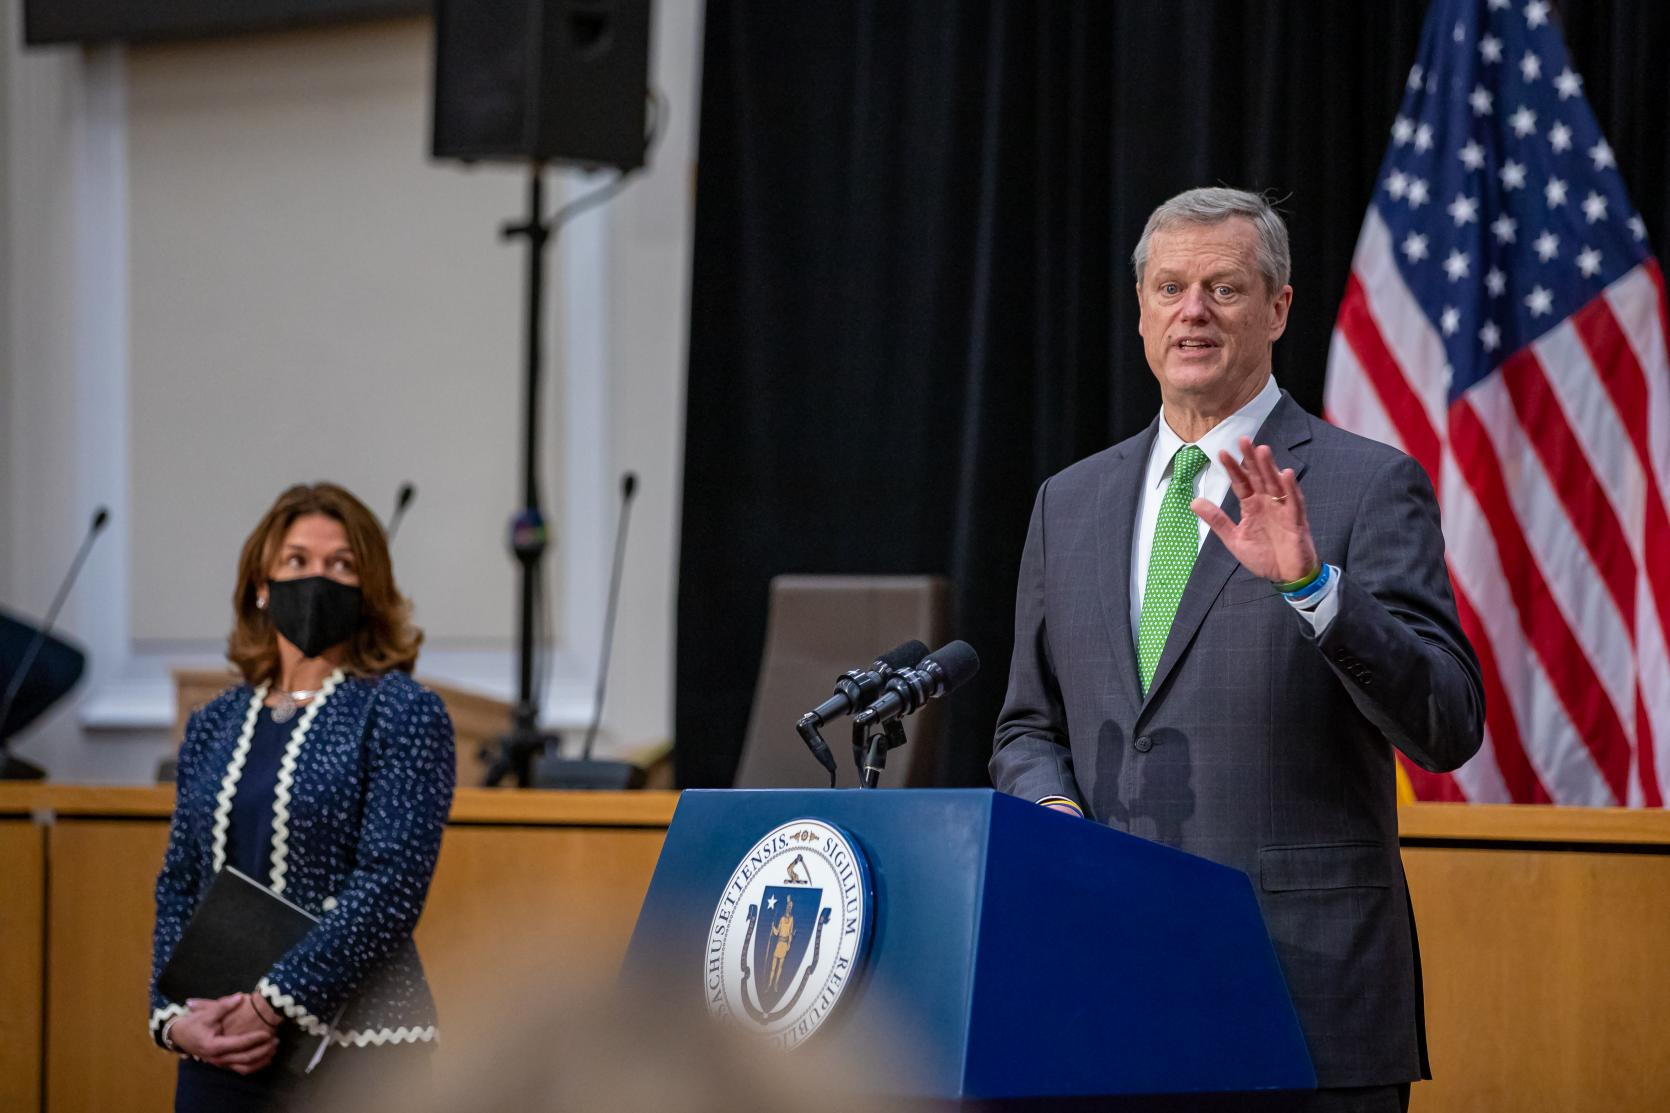 Baker-Polito Administration Awards Another $37 Million in Grants to 638 Businesses, Extends Capacity Limits and Lifts Early Closing Requirement for Businesses